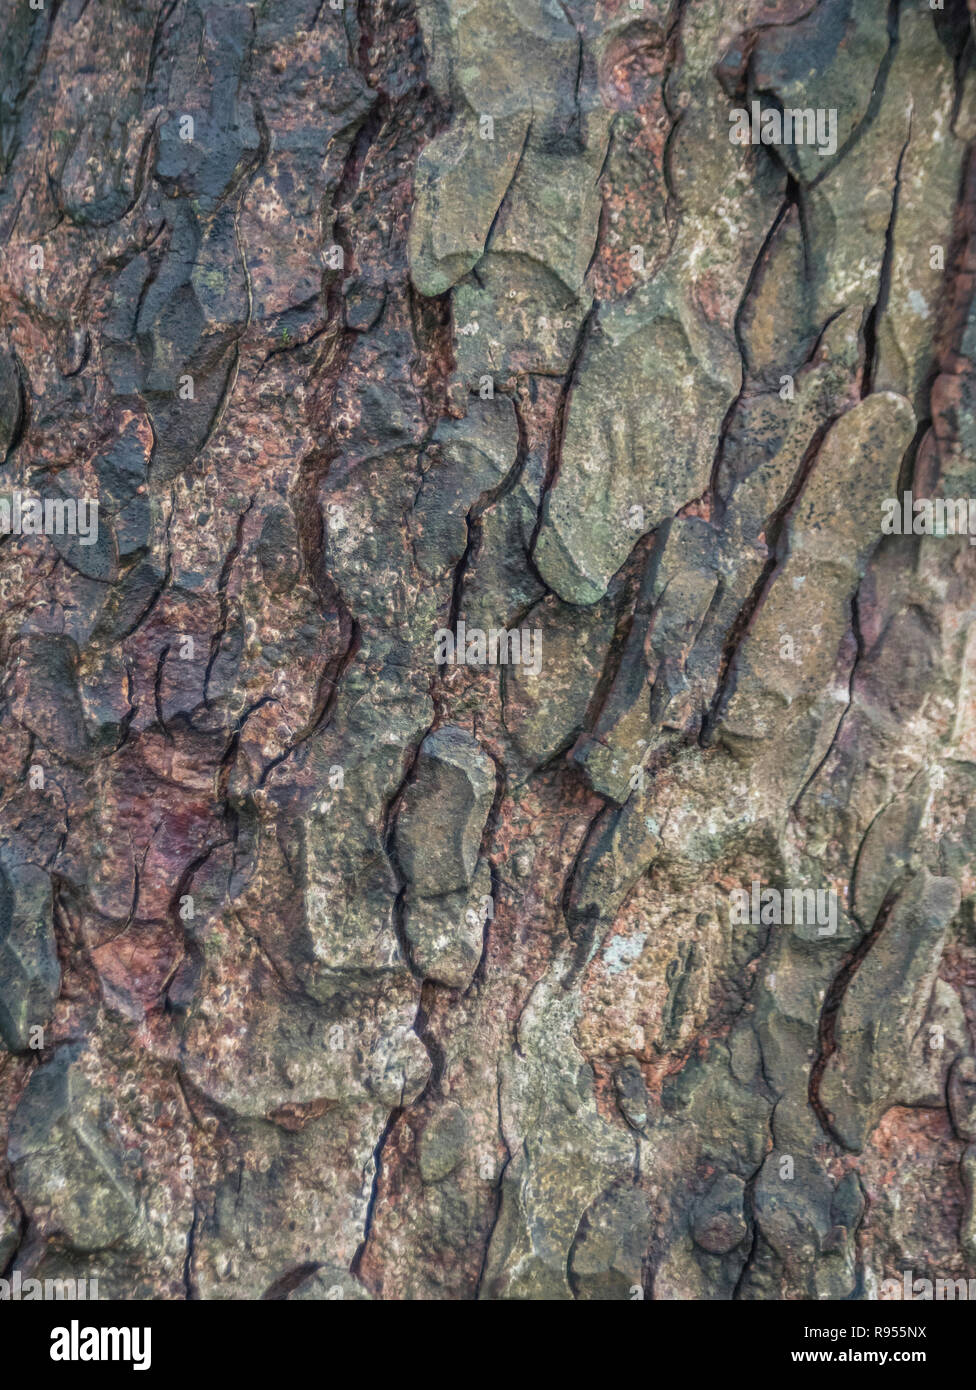 Close detail of the autumnal bark (after rain shower) of a Horse-Chestnut / Aesculus hippocastanum tree trunk. Tree bark close up. - Stock Image